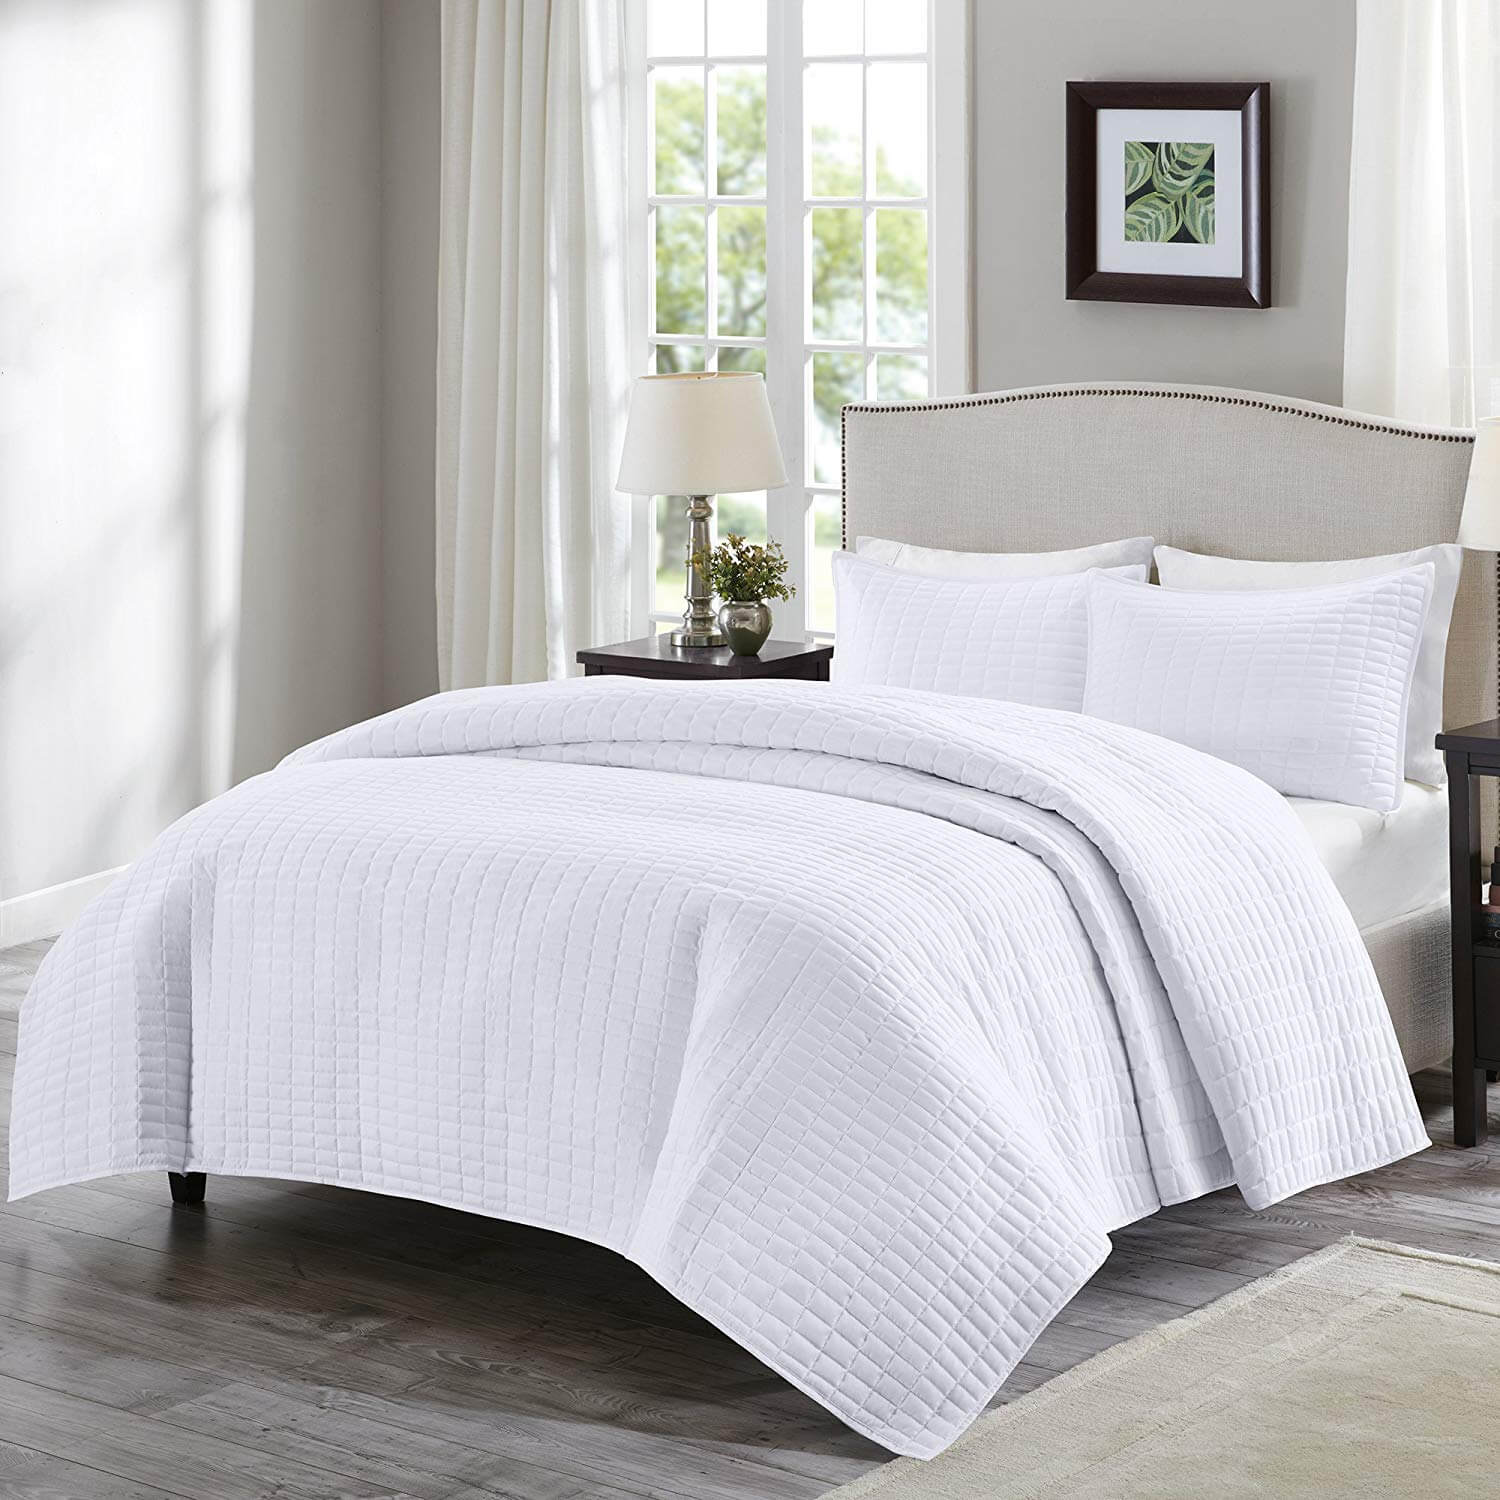 4. Comfort Spaces - Kienna Quilt Mini Set - 2 Piece